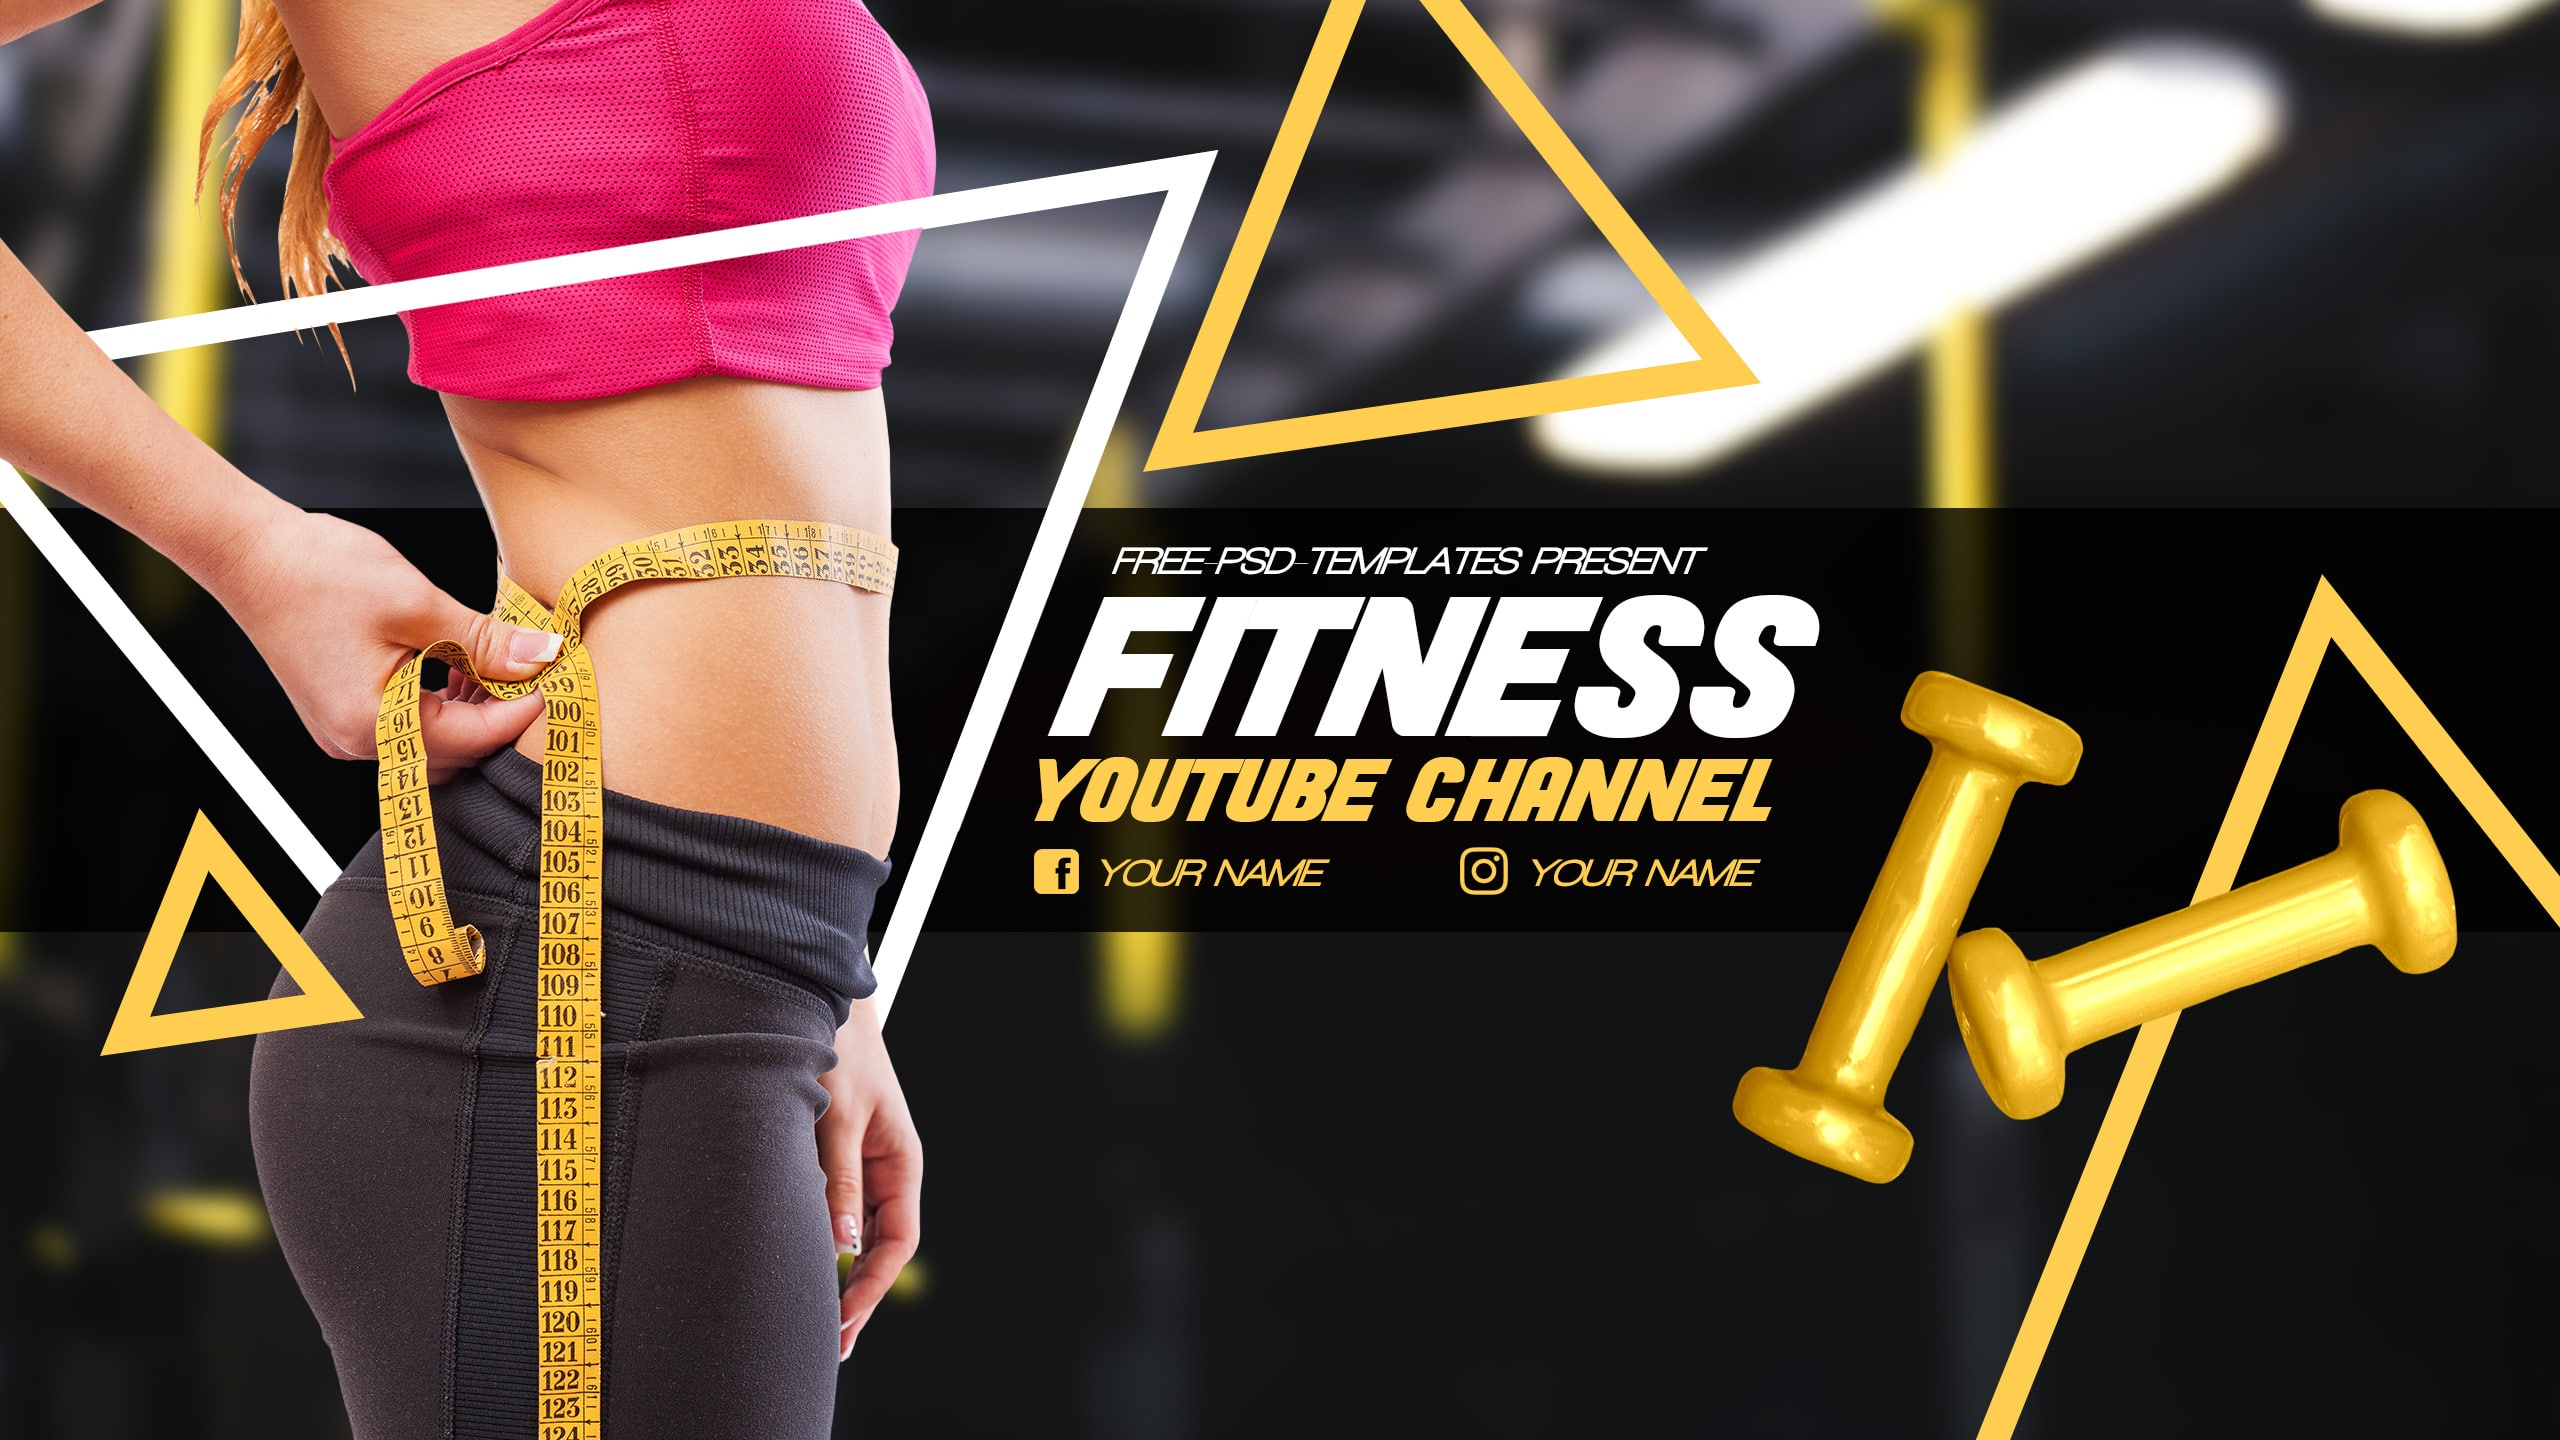 Free Fitness YouTube Banner Template 2560x1440